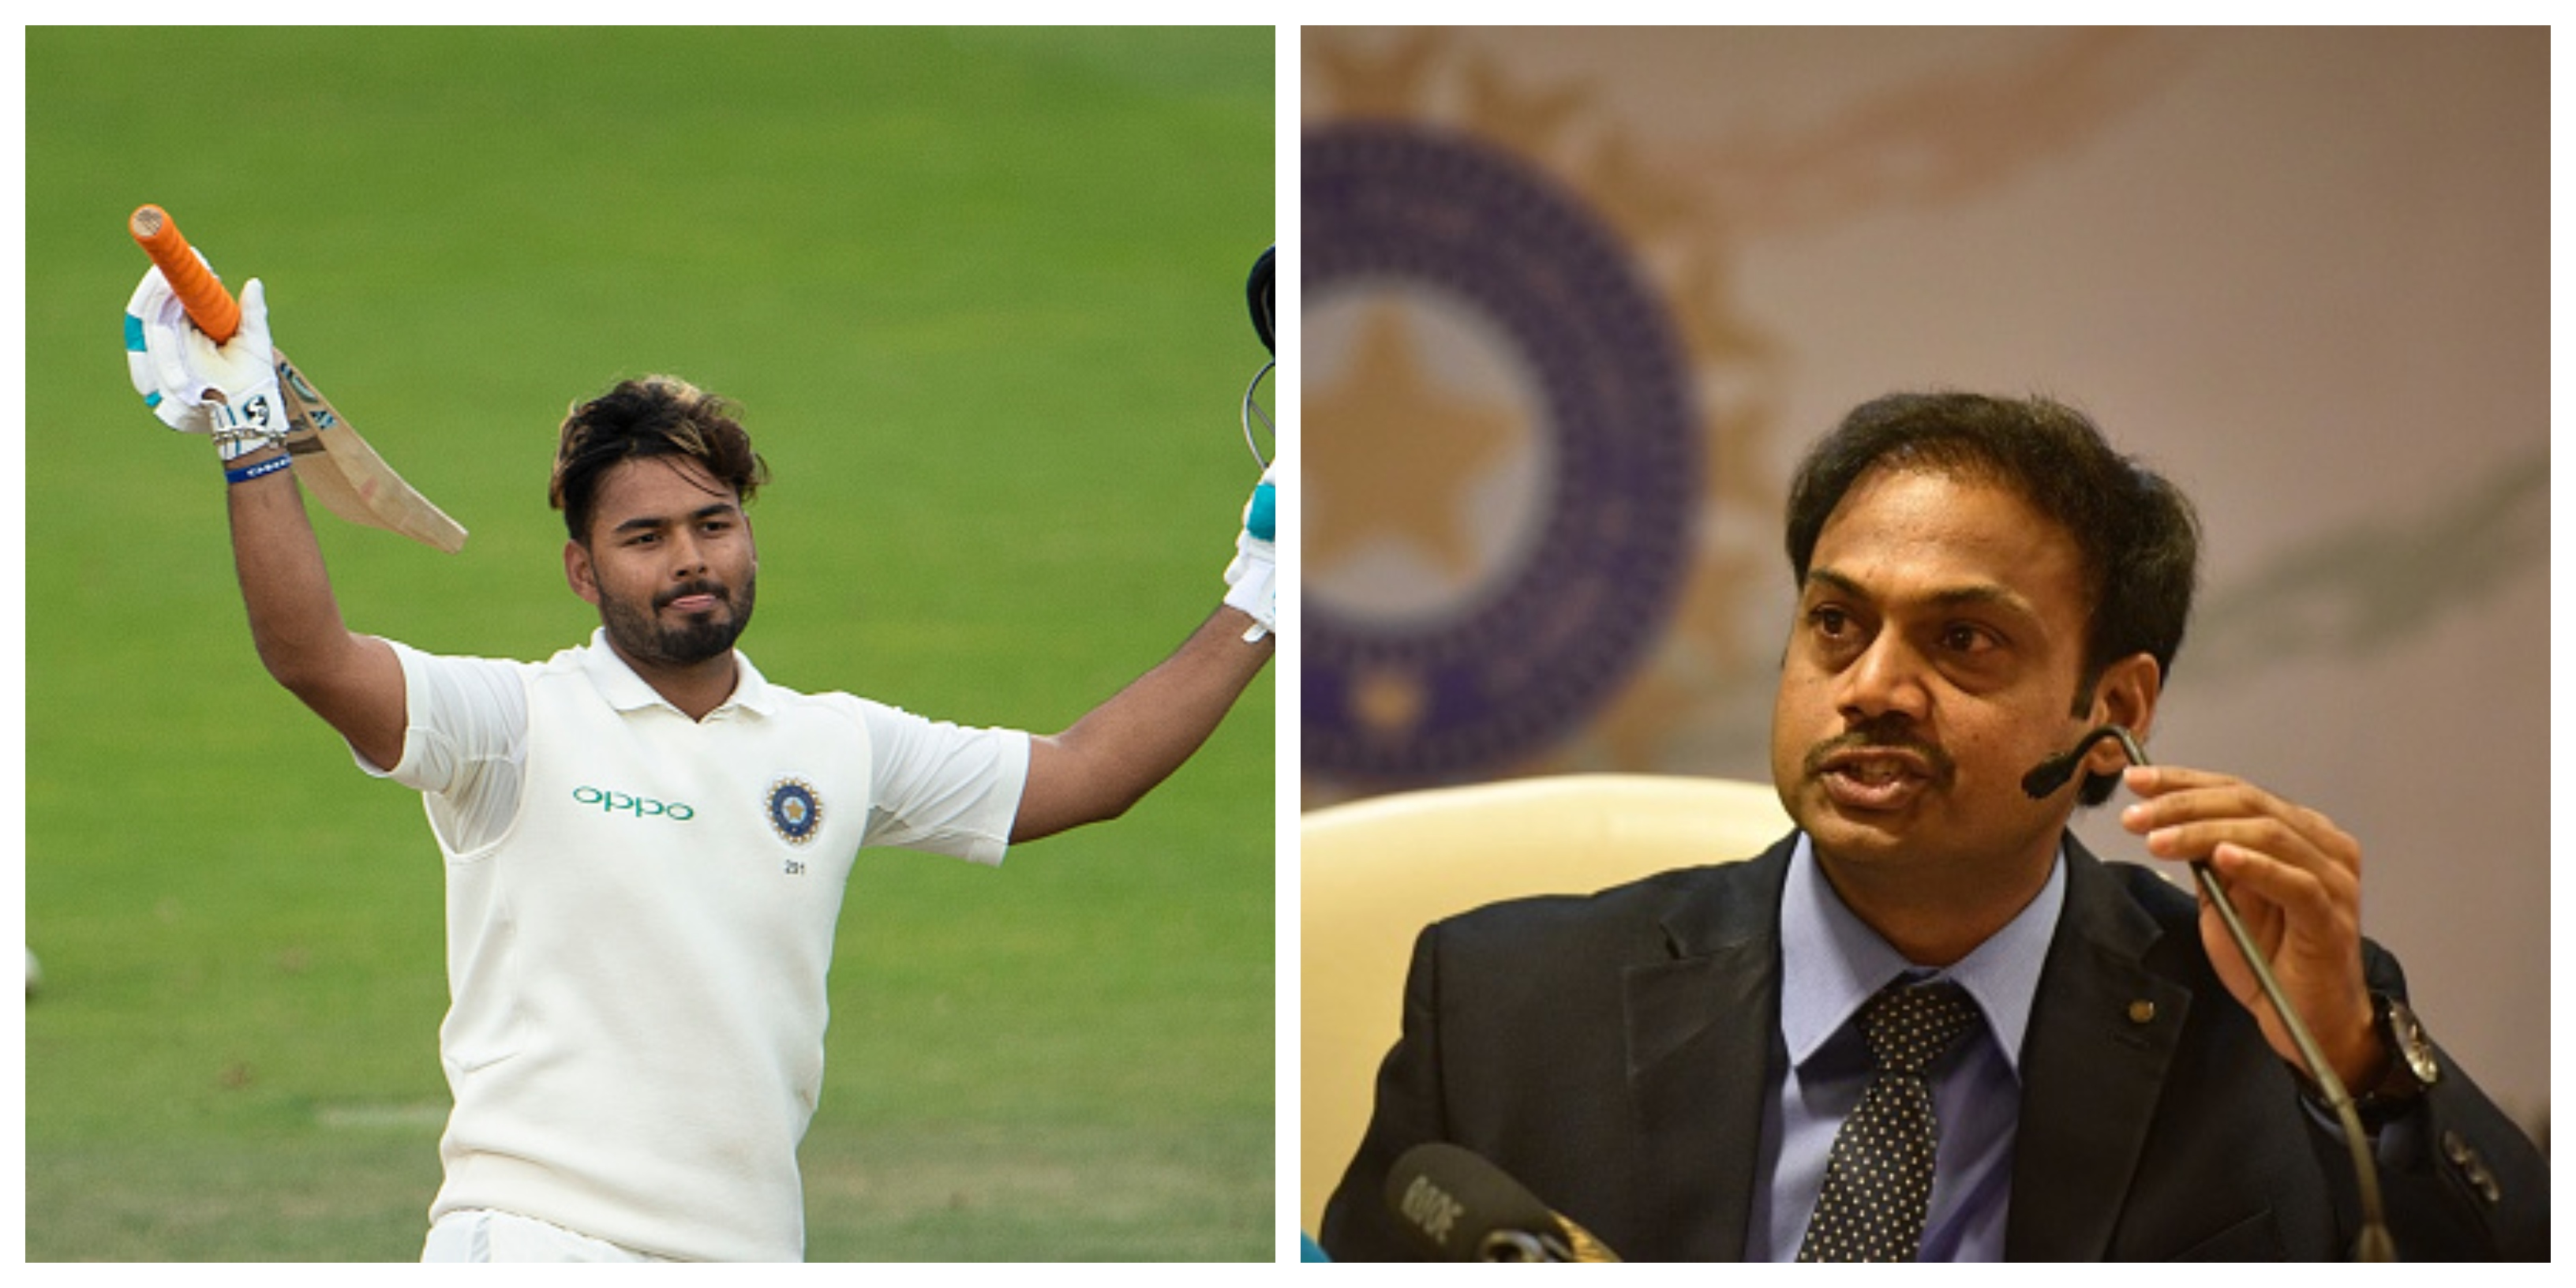 MSK Prasad thinks that while Pant impressed with the bat, he has to work harder on his keeping | Getty